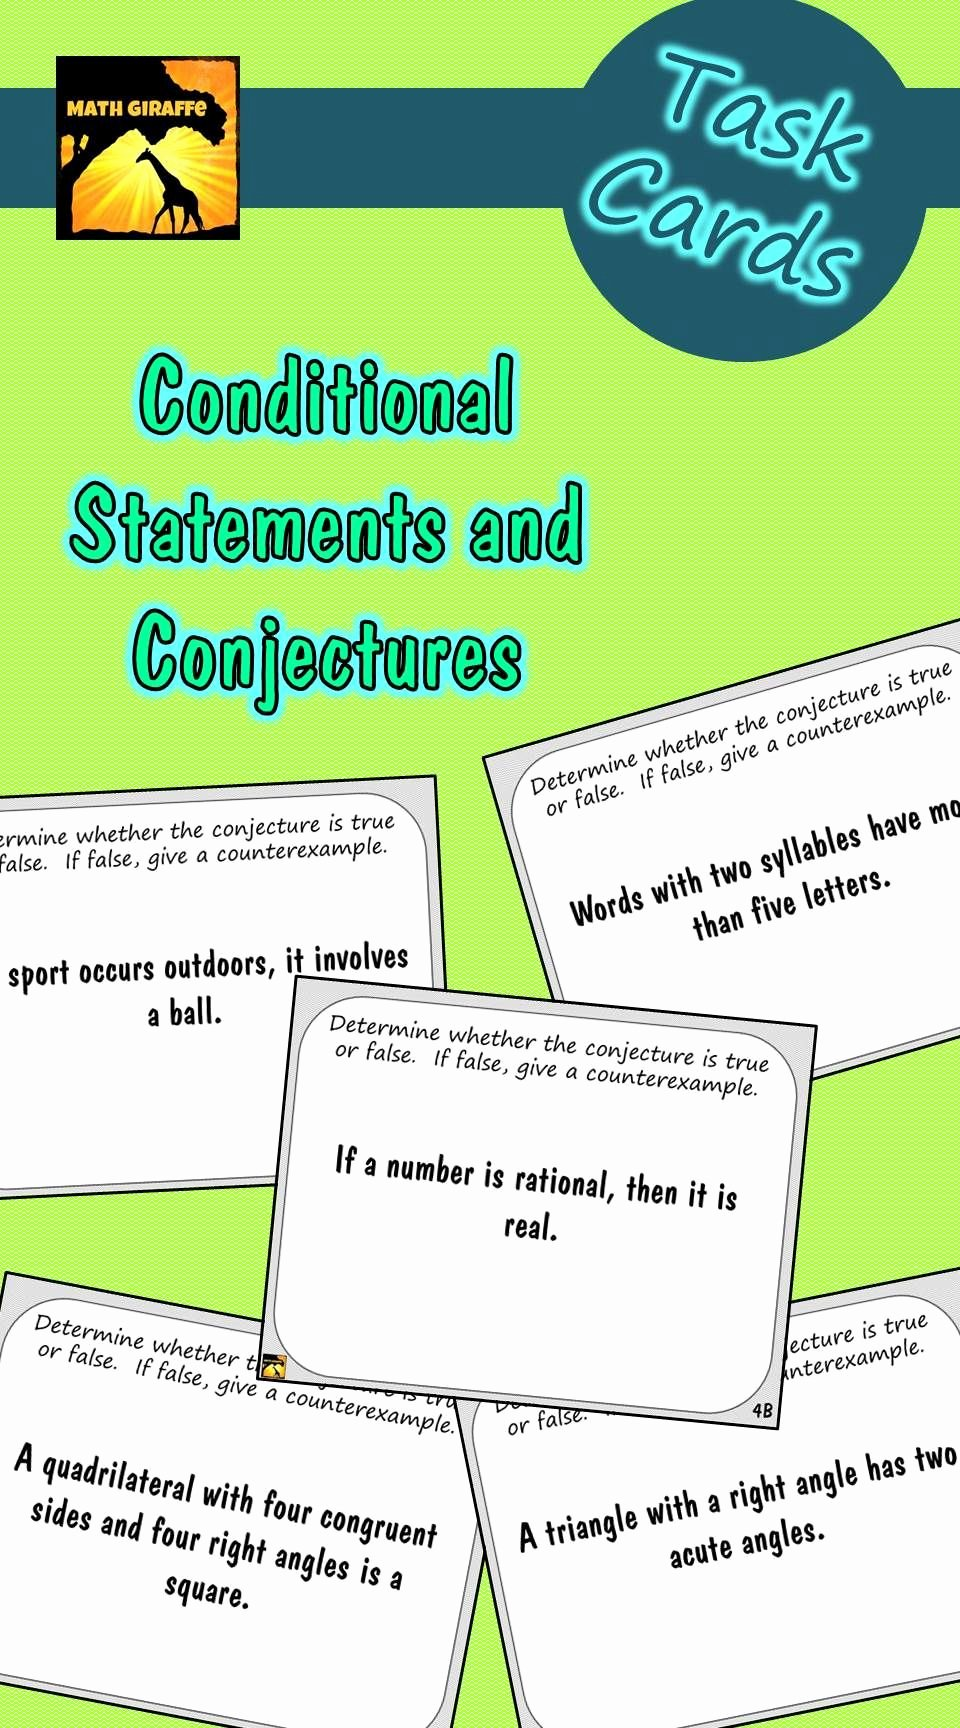 Conditional Statement Worksheet Geometry Lovely 2 1a Practice Worksheet Conditional Statements Answers